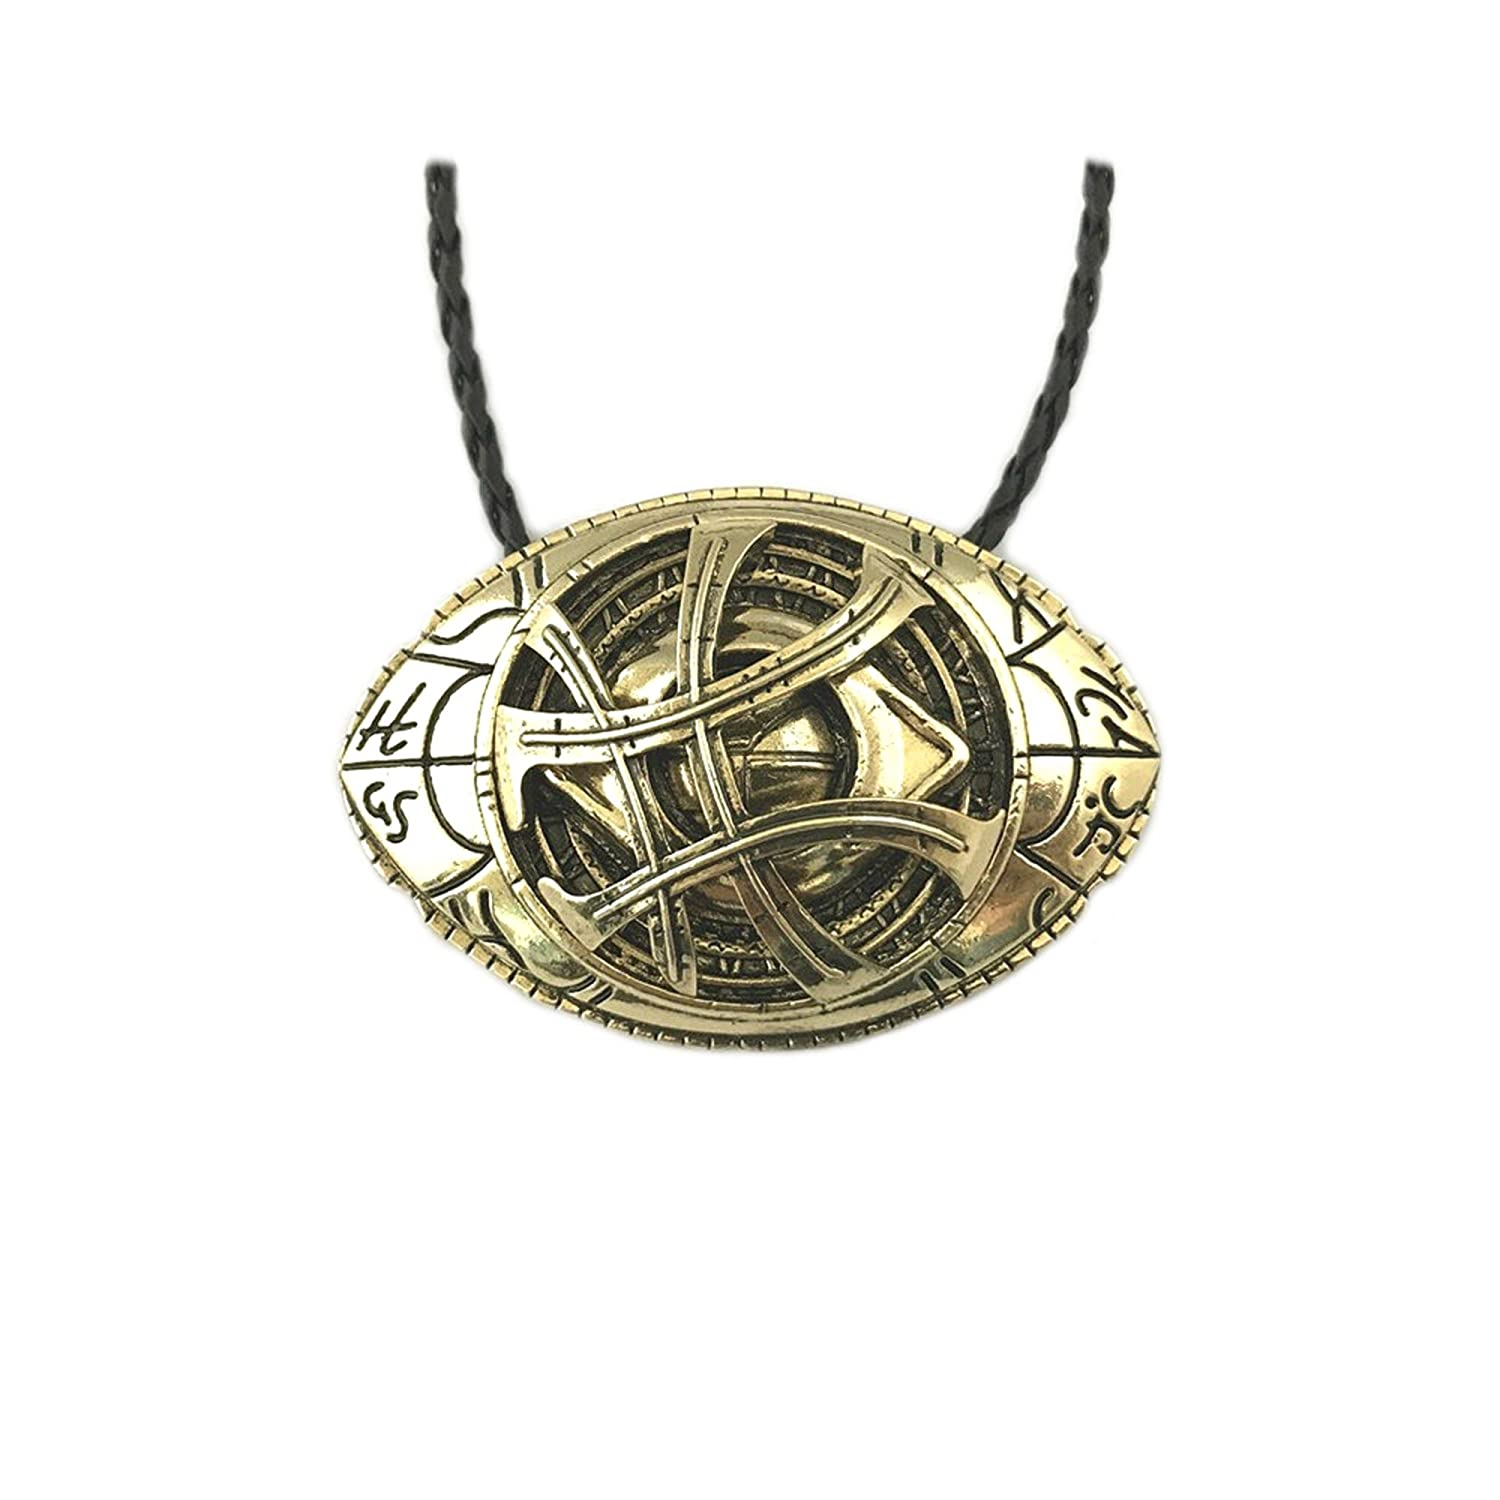 Doctor Strange MCU Marvel Movie Pendant Necklace With Gift Box from Outlander Gear